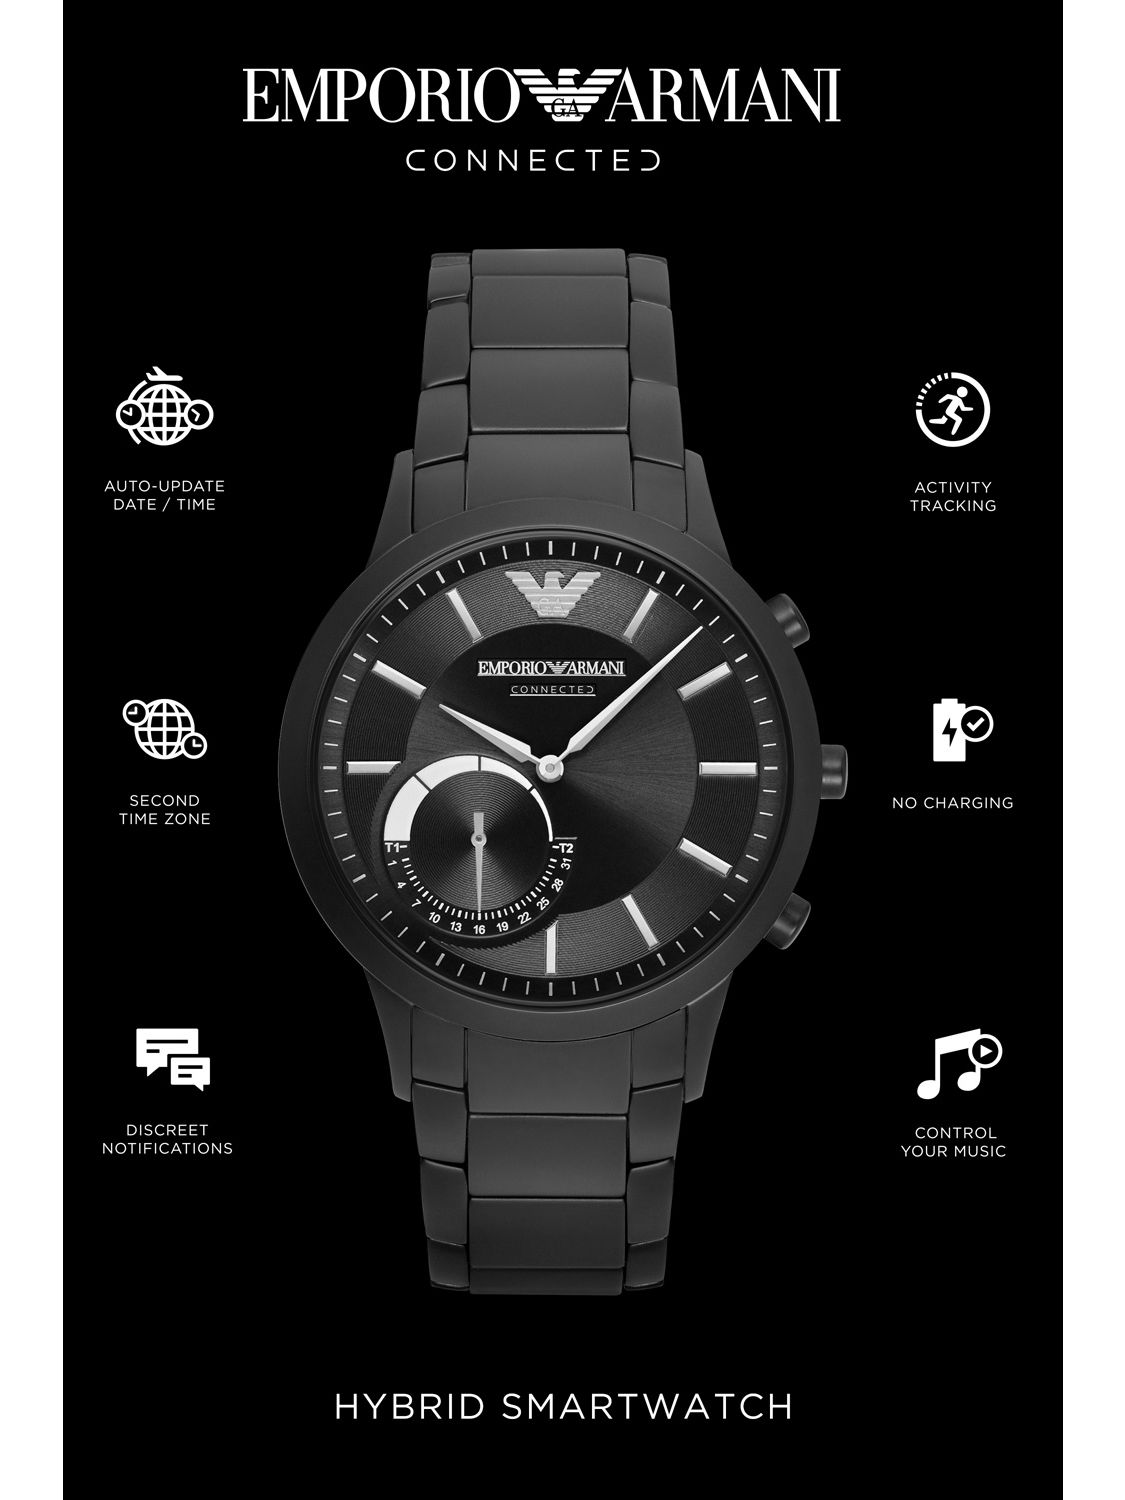 thay-pin-dong-ho-thong-minh-smartwatch-emporio-armani-art3001-armanshop-vn